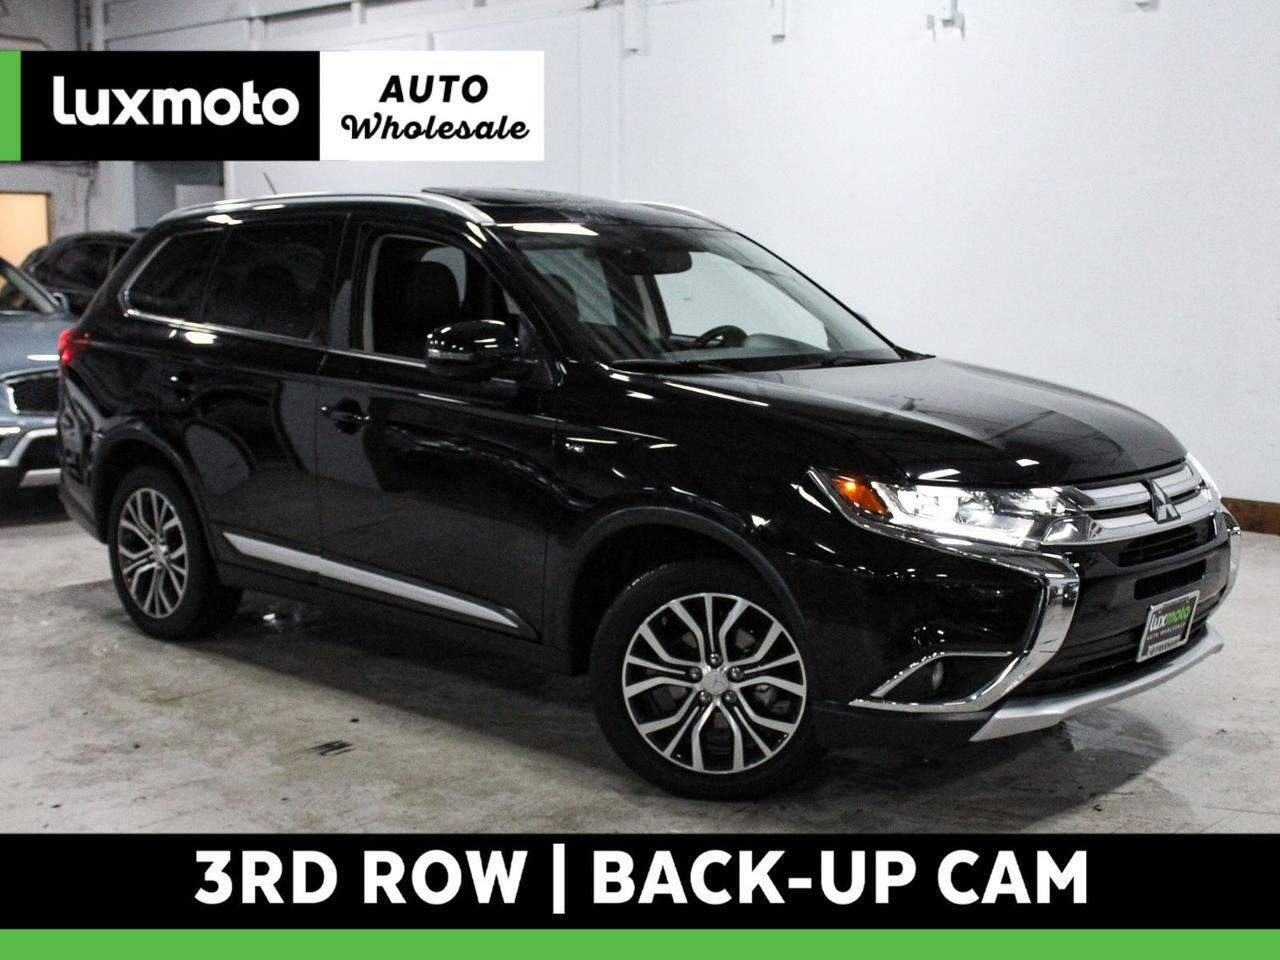 2016 Mitsubishi Outlander GT AWD 3rd Row Back-Up Camera Heated Seats Portland OR